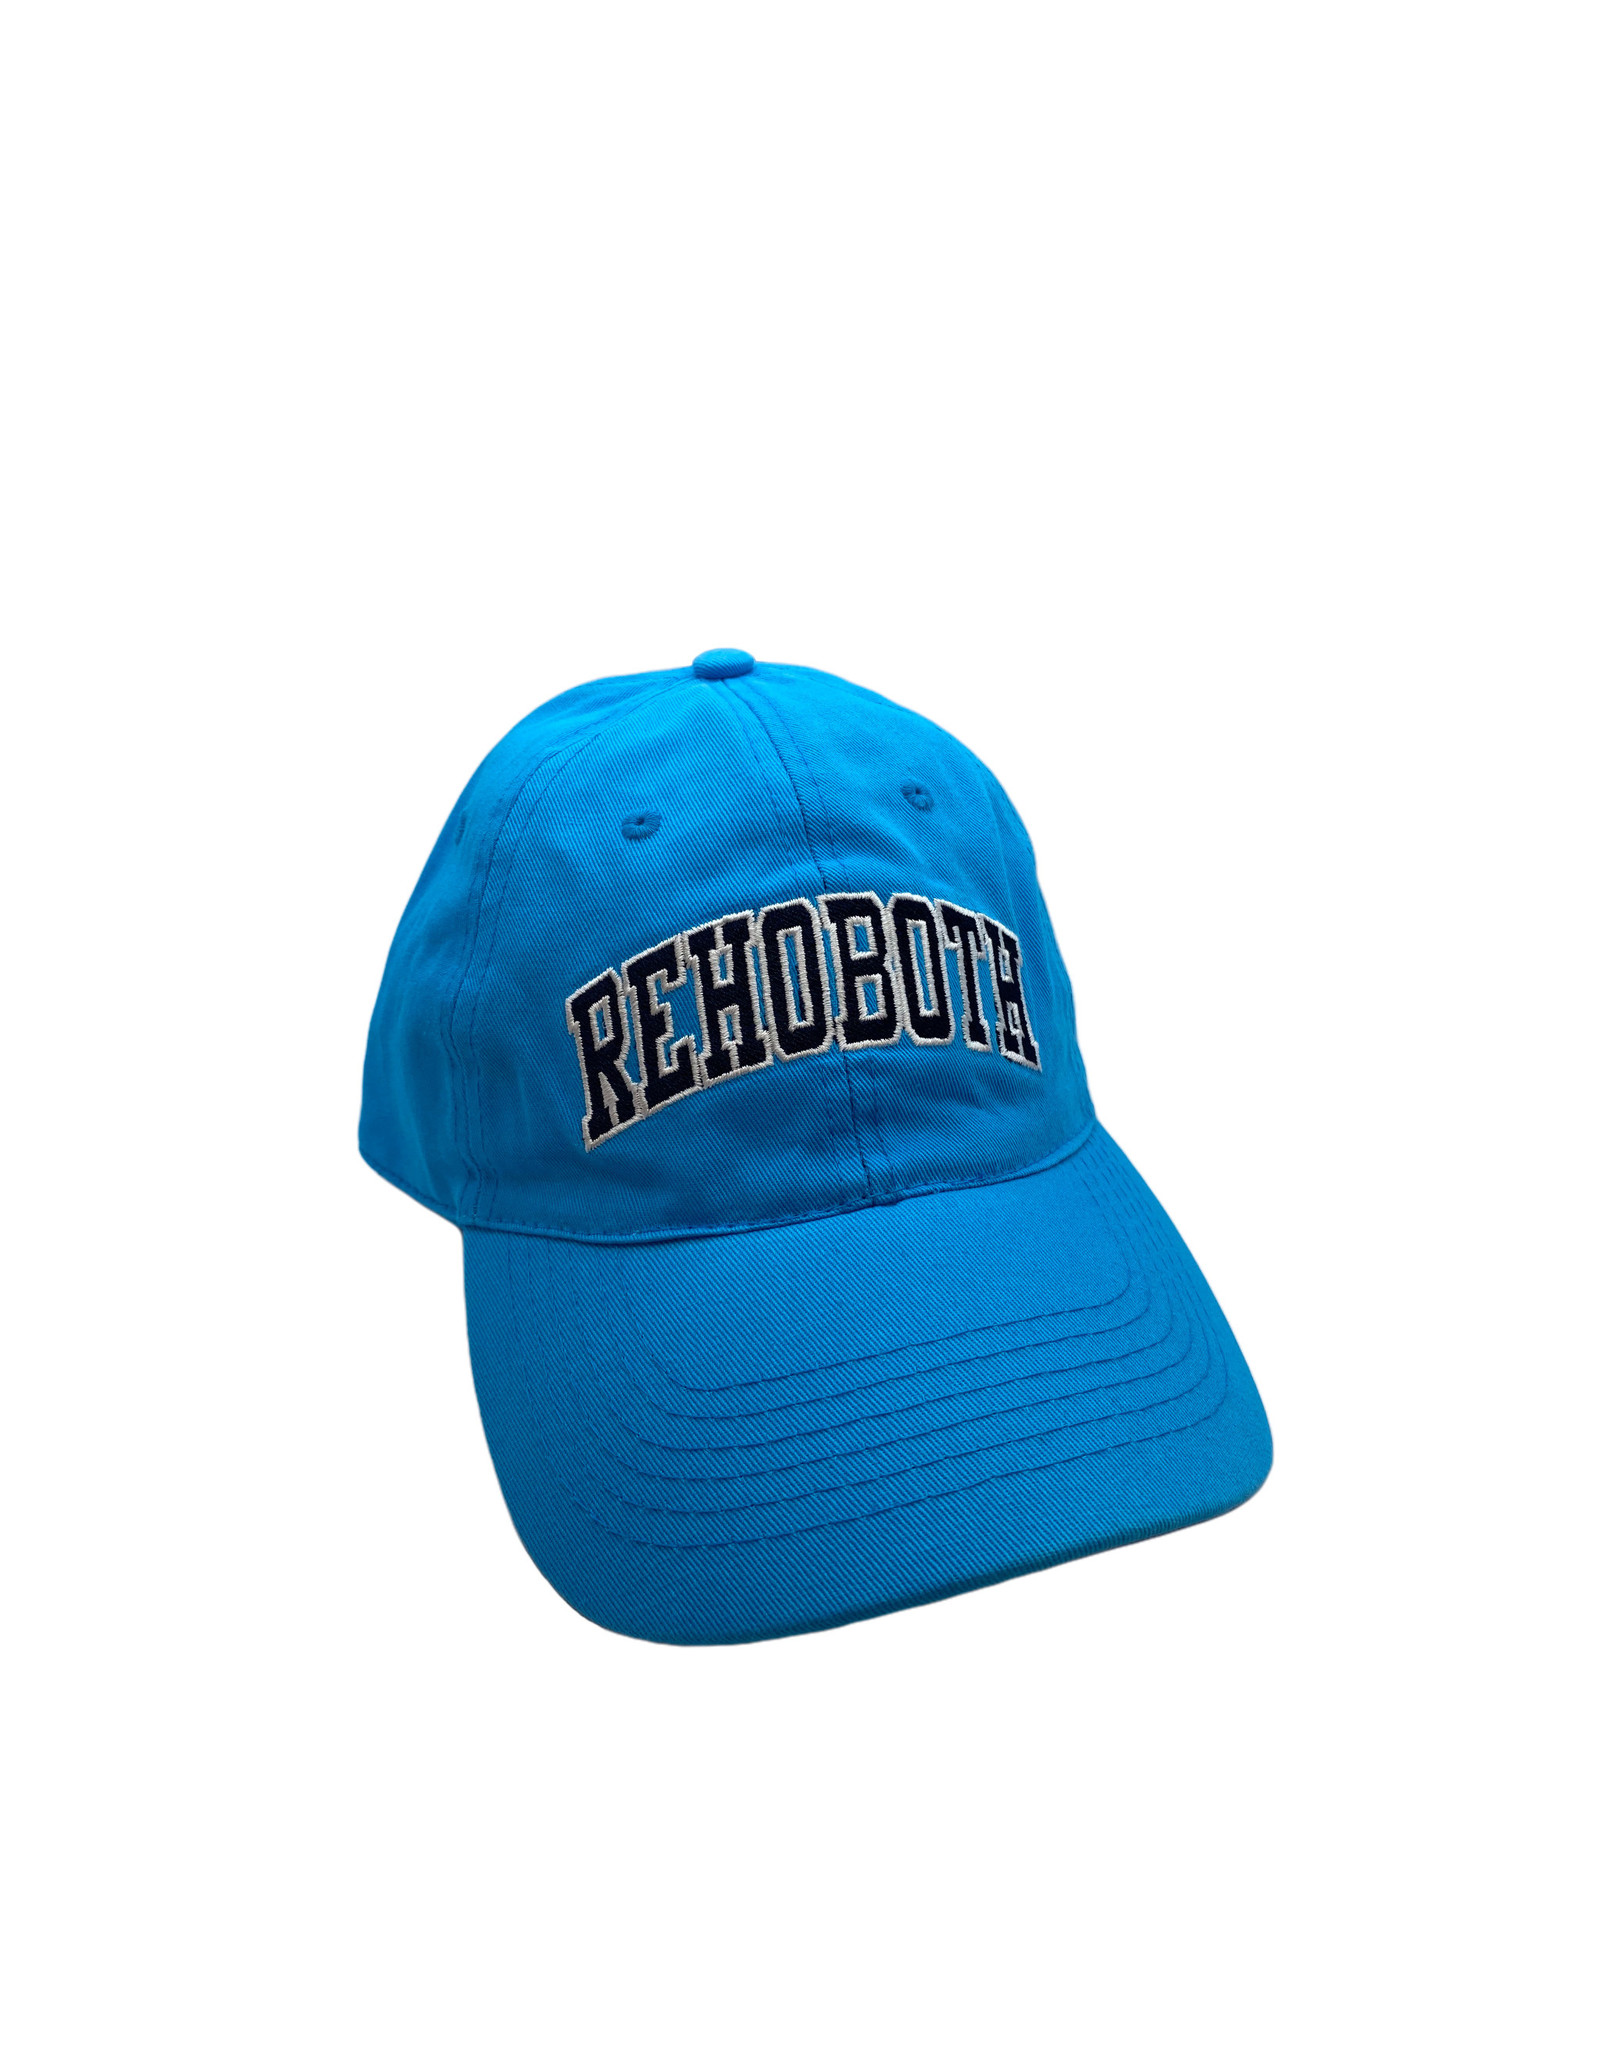 REHOBOTH LIFESTYLE CLASSIC COTTON BEACH HAT ADJUSTABLE OS LAGOON ARCH